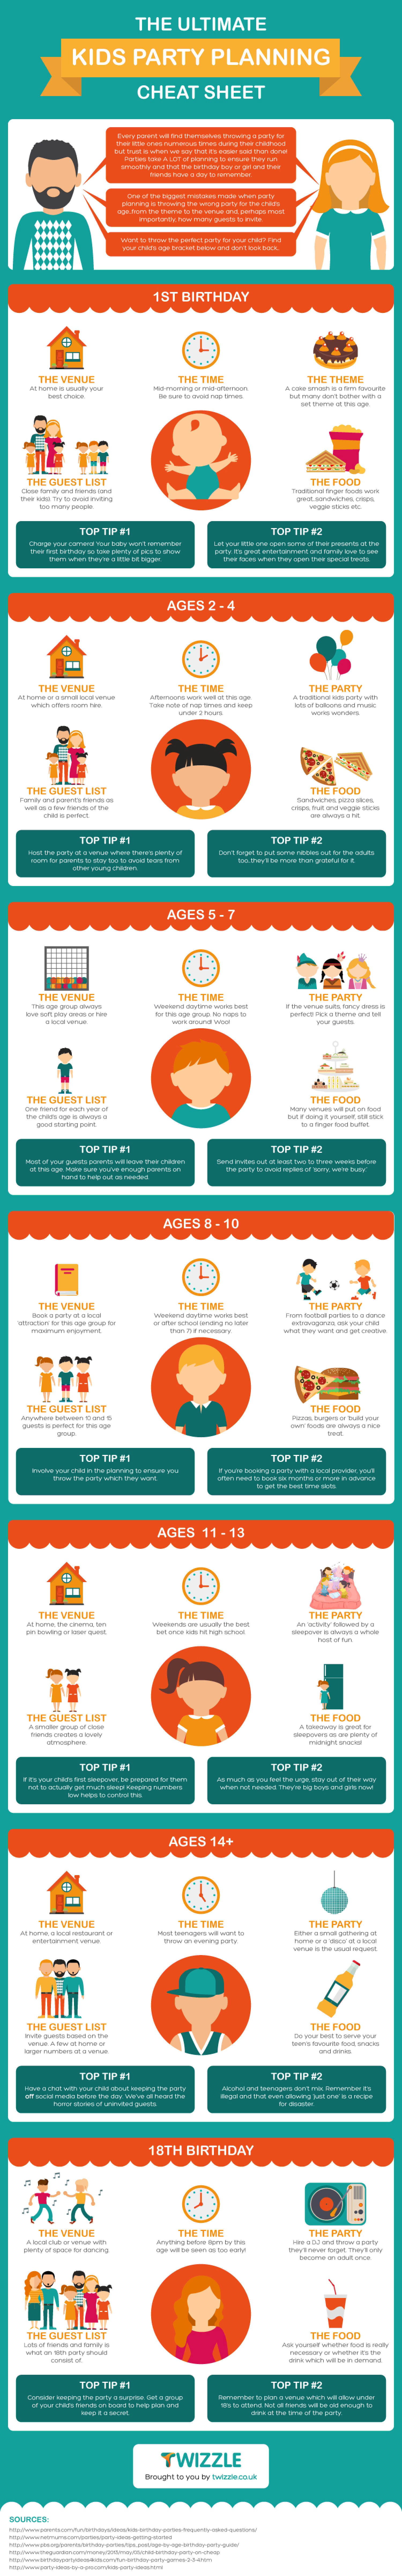 The Ultimate Kids Party Planning Cheat Sheet Infographic